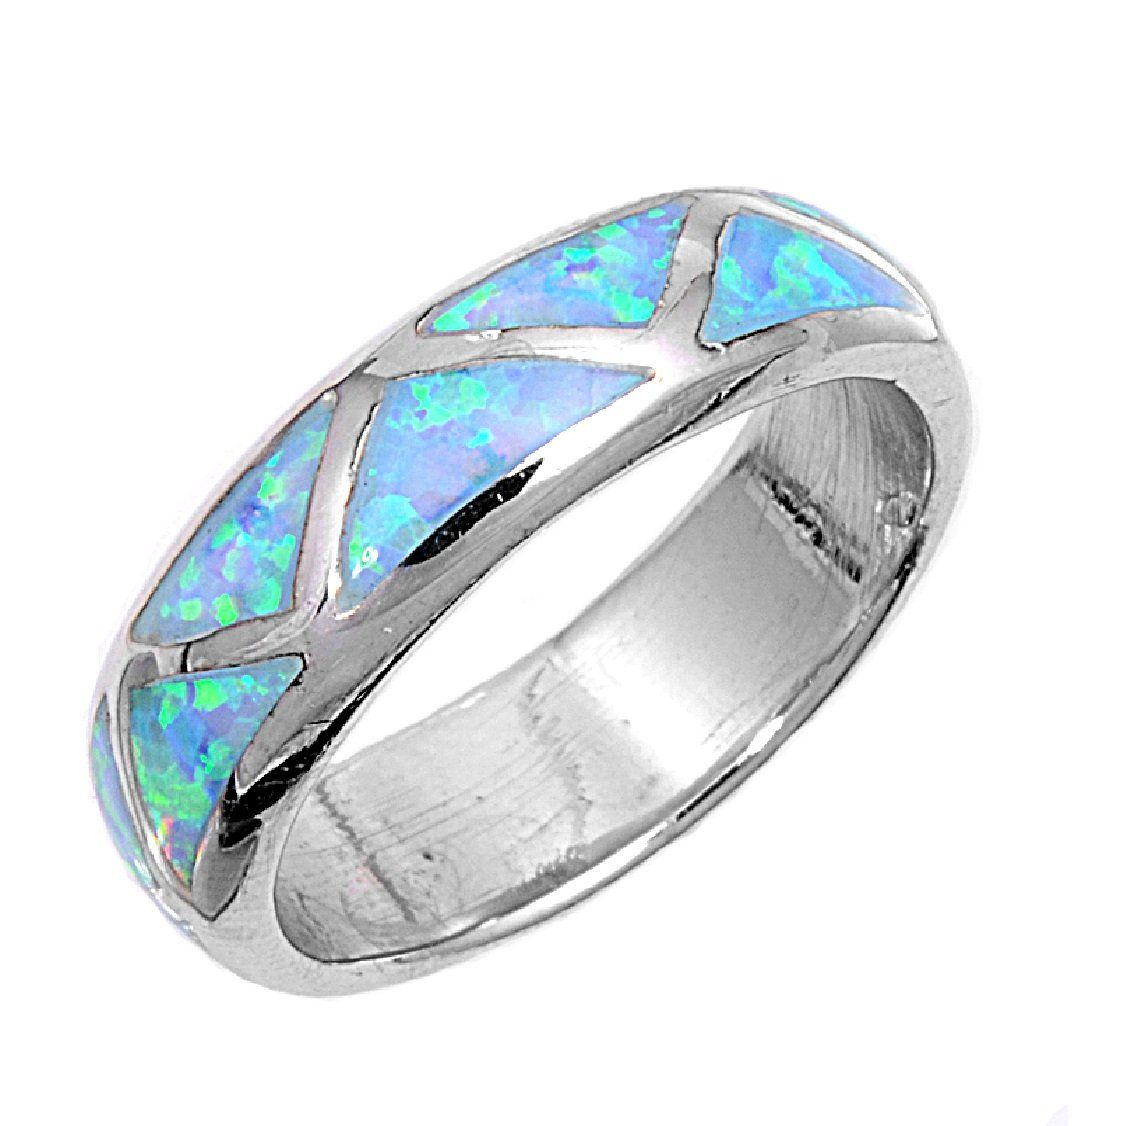 amazon wedding rings Rhodium Plated Sterling Silver Wedding Engagement Ring Blue Opal Marriage Band Size 7 to Size 7 Double Accent